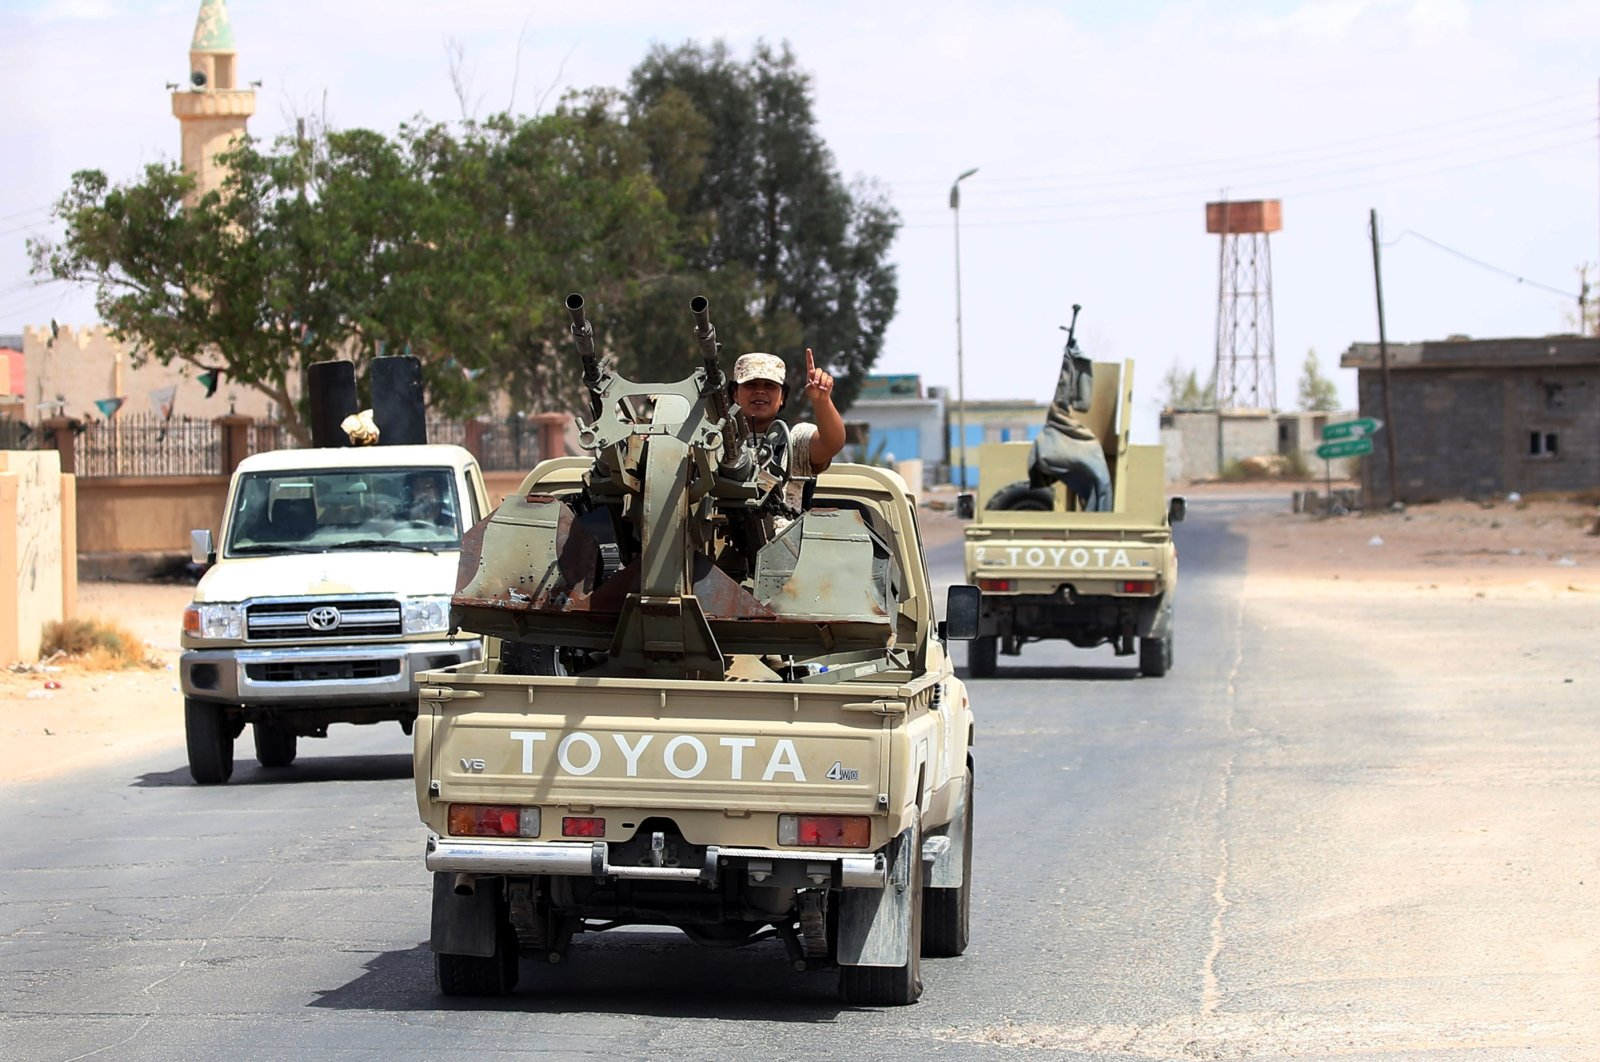 Fighters loyal to the internationally recognized Libyan Government of National Accord (GNA) secure the area of Abu Qurain, halfway between the capital Tripoli and Libya's second-largest city Benghazi, against forces loyal to putschist Gen. Khalifa Haftar, who is based in eastern Benghazi, in Libya, July 20, 2020. (AFP Photo)